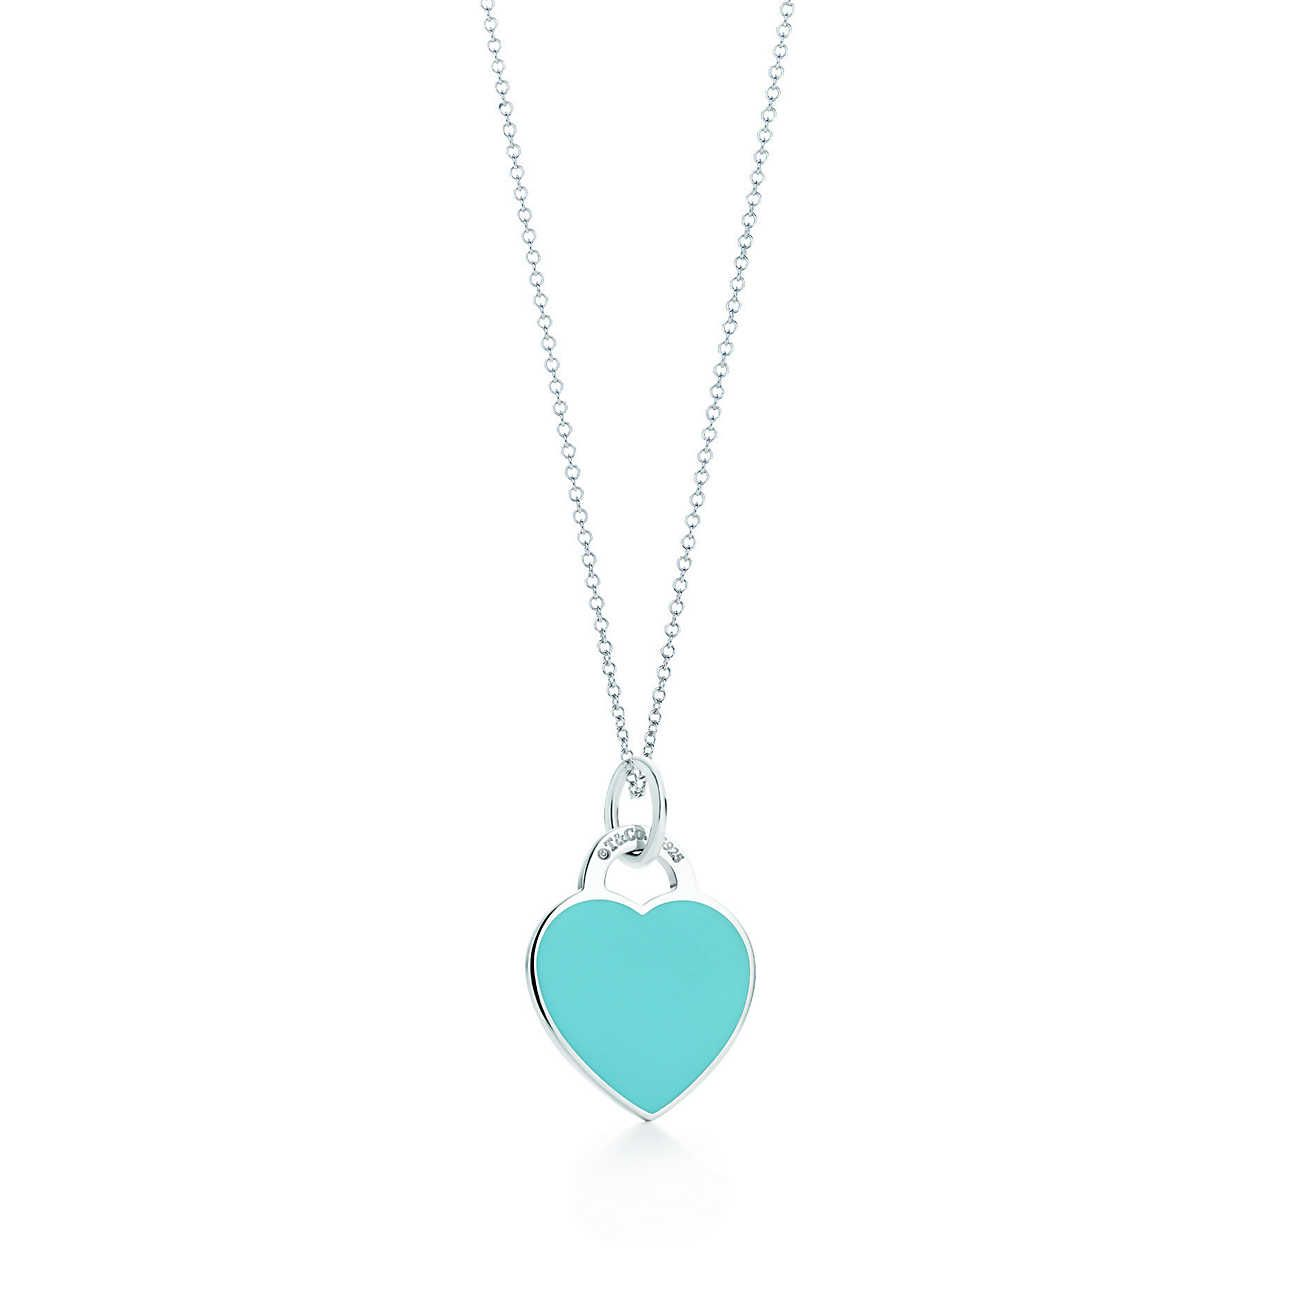 c5b29d52f ($225) $175 + $50 Return to Tiffany™<br>heart tag charm and chain/ Medium  Size